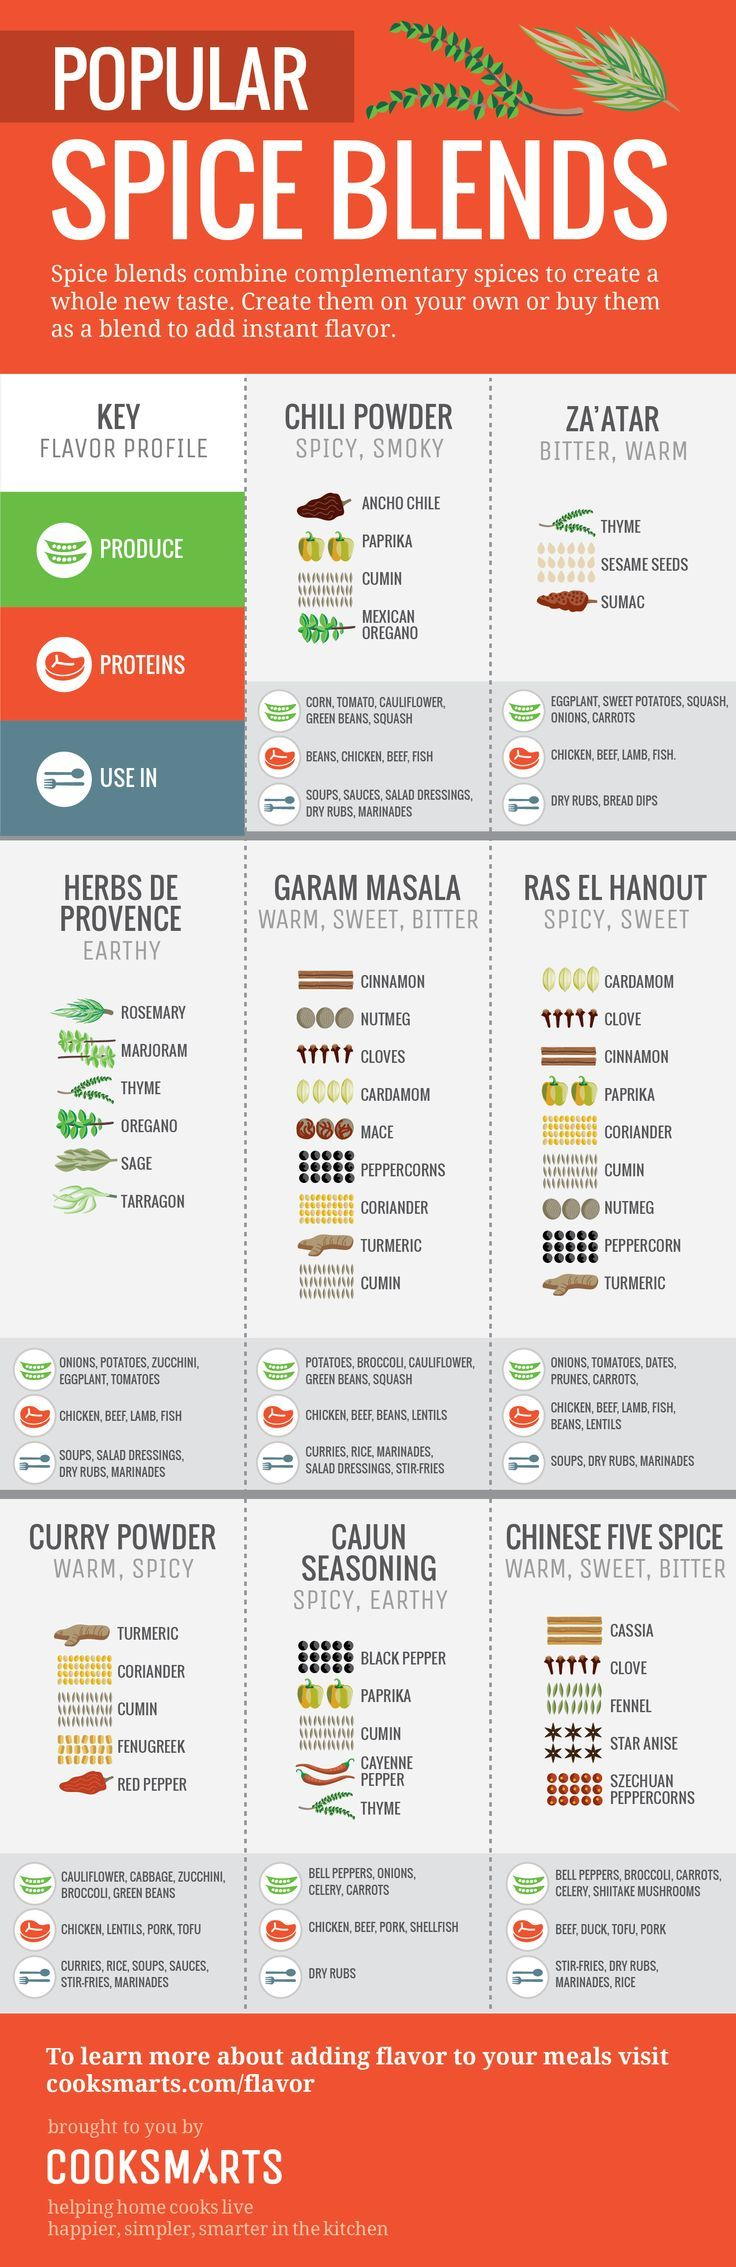 Guide to Popular Spice Blends via Cook Smarts #infographic #spices #flavor